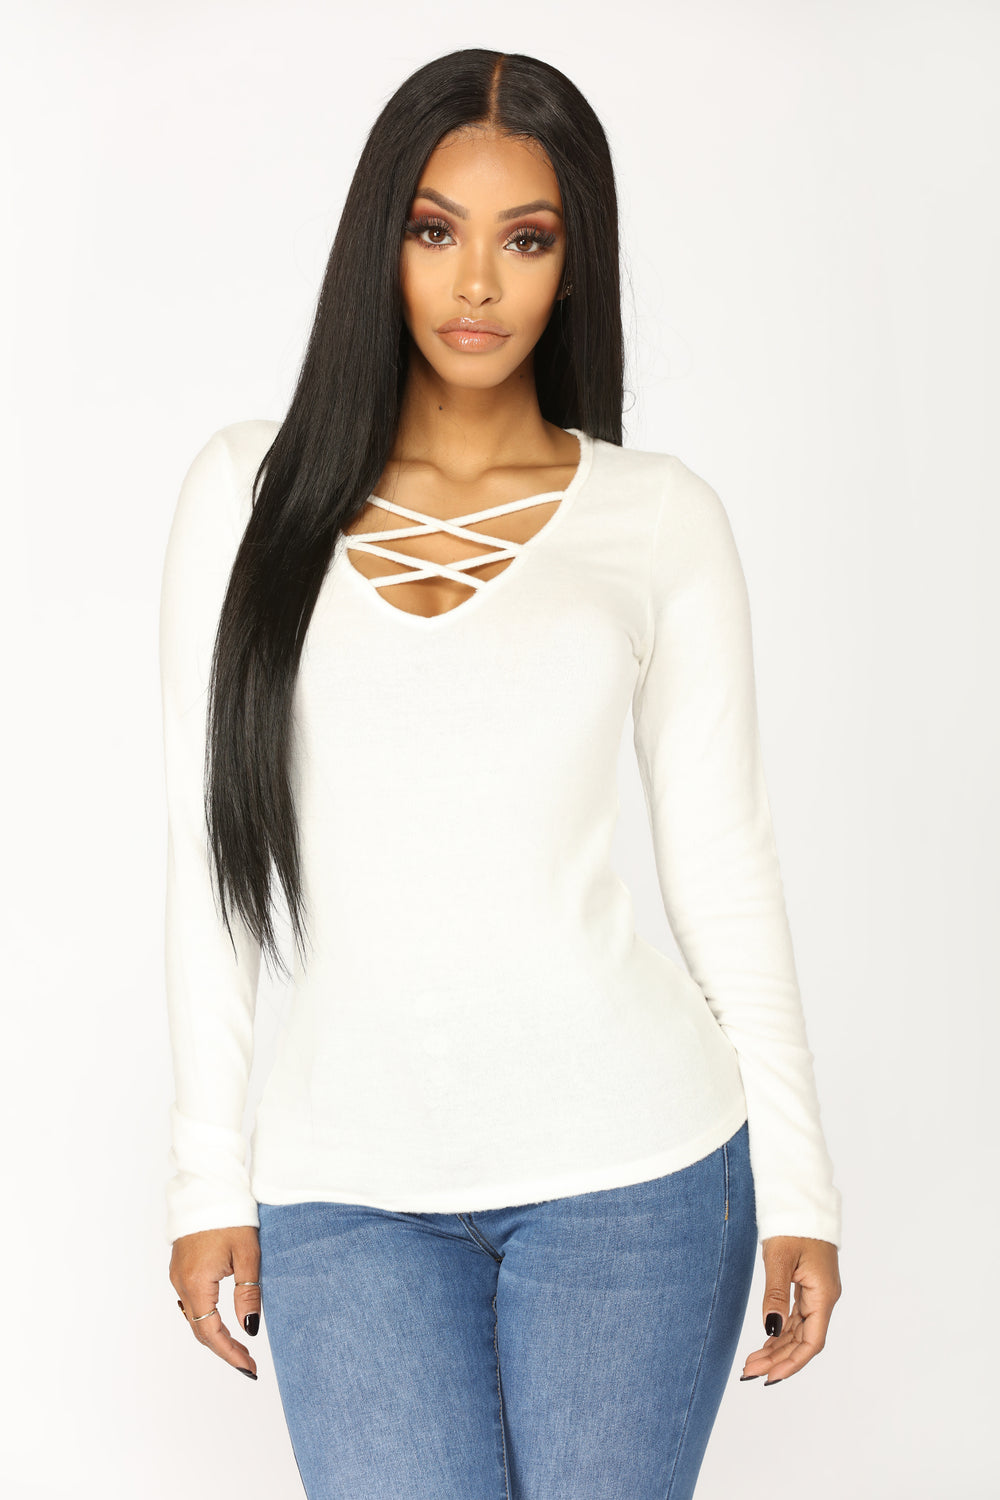 Do It For Yourself Lace Up Top - White